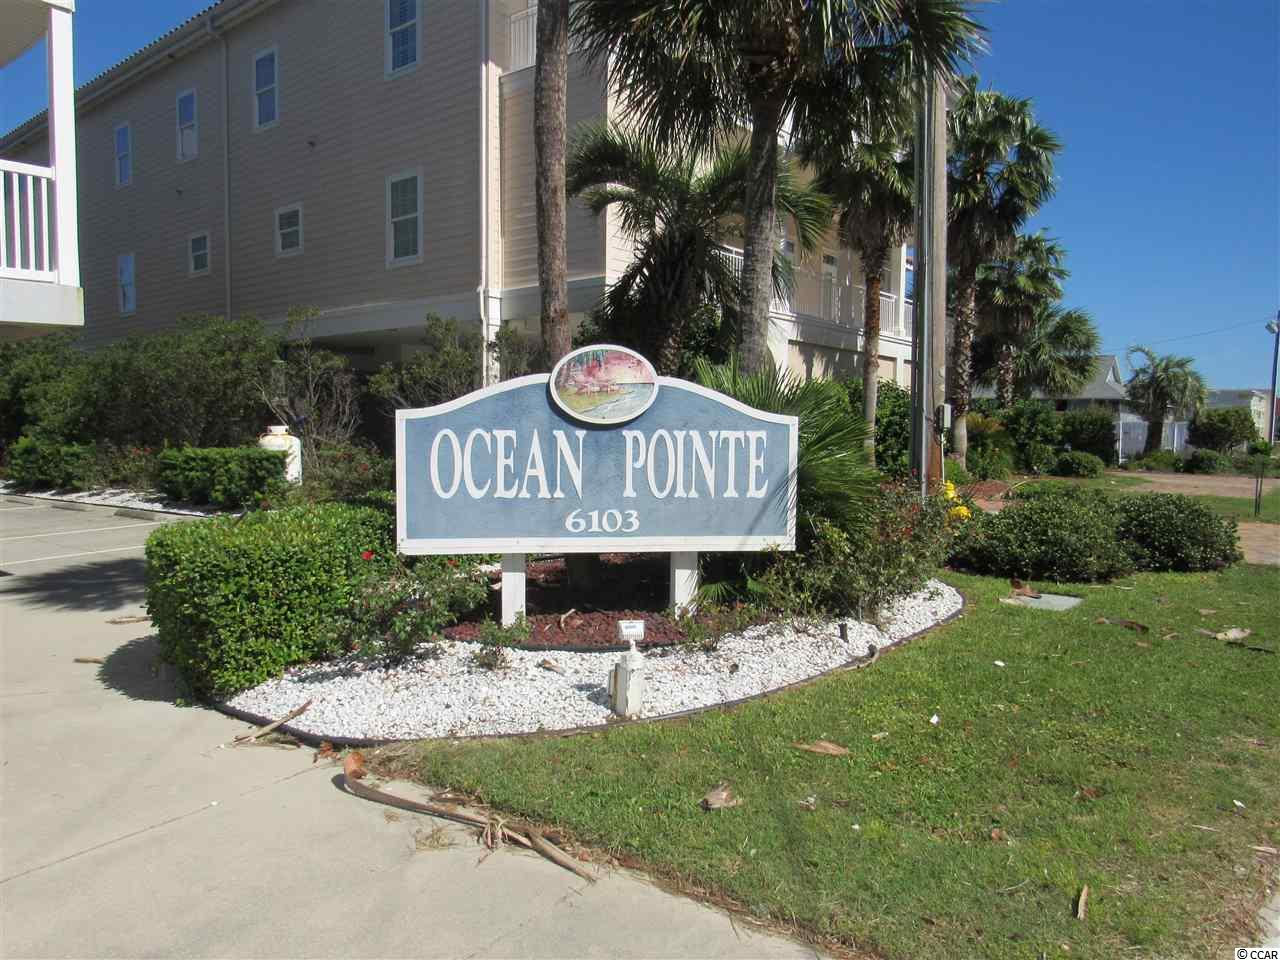 Ocean Pointe condo for sale in North Myrtle Beach, SC